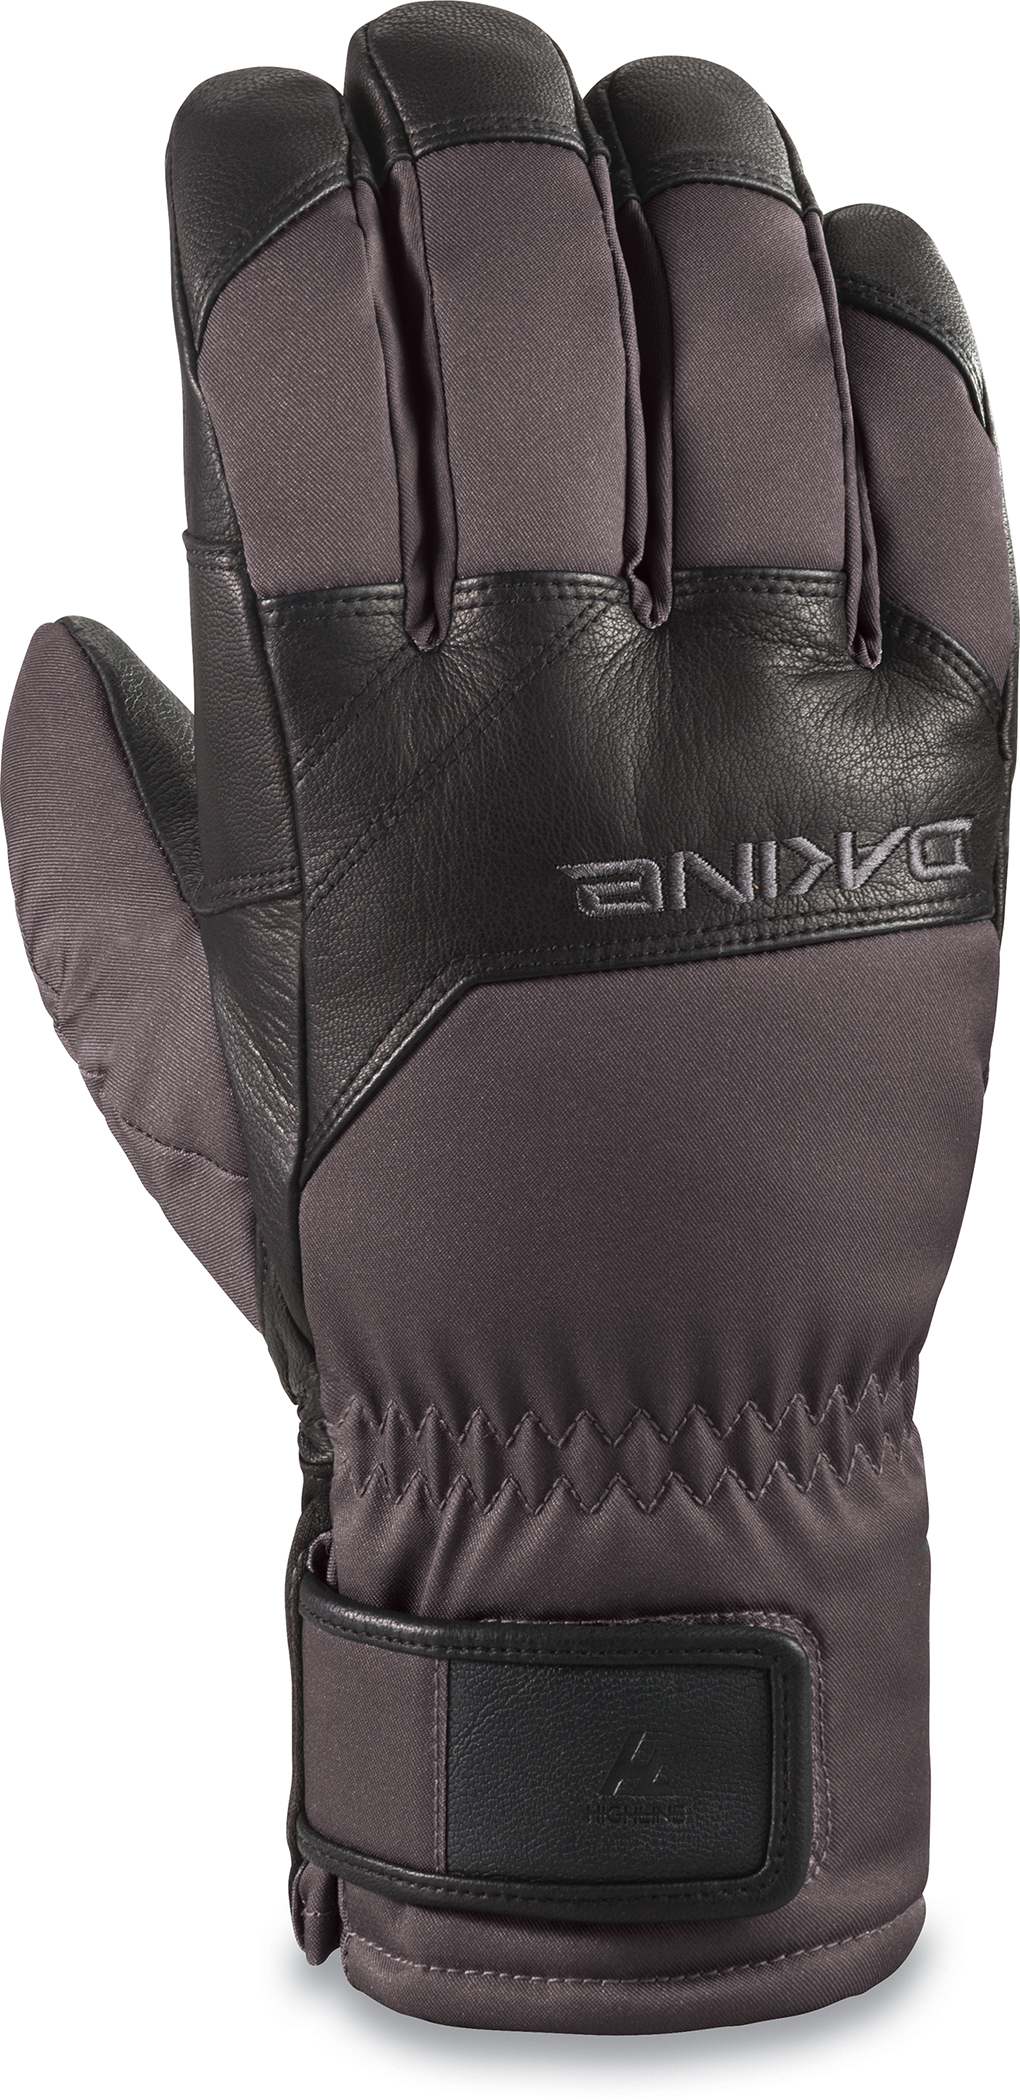 27925b52e082 Dakine Excursion Goretex Glove 2018